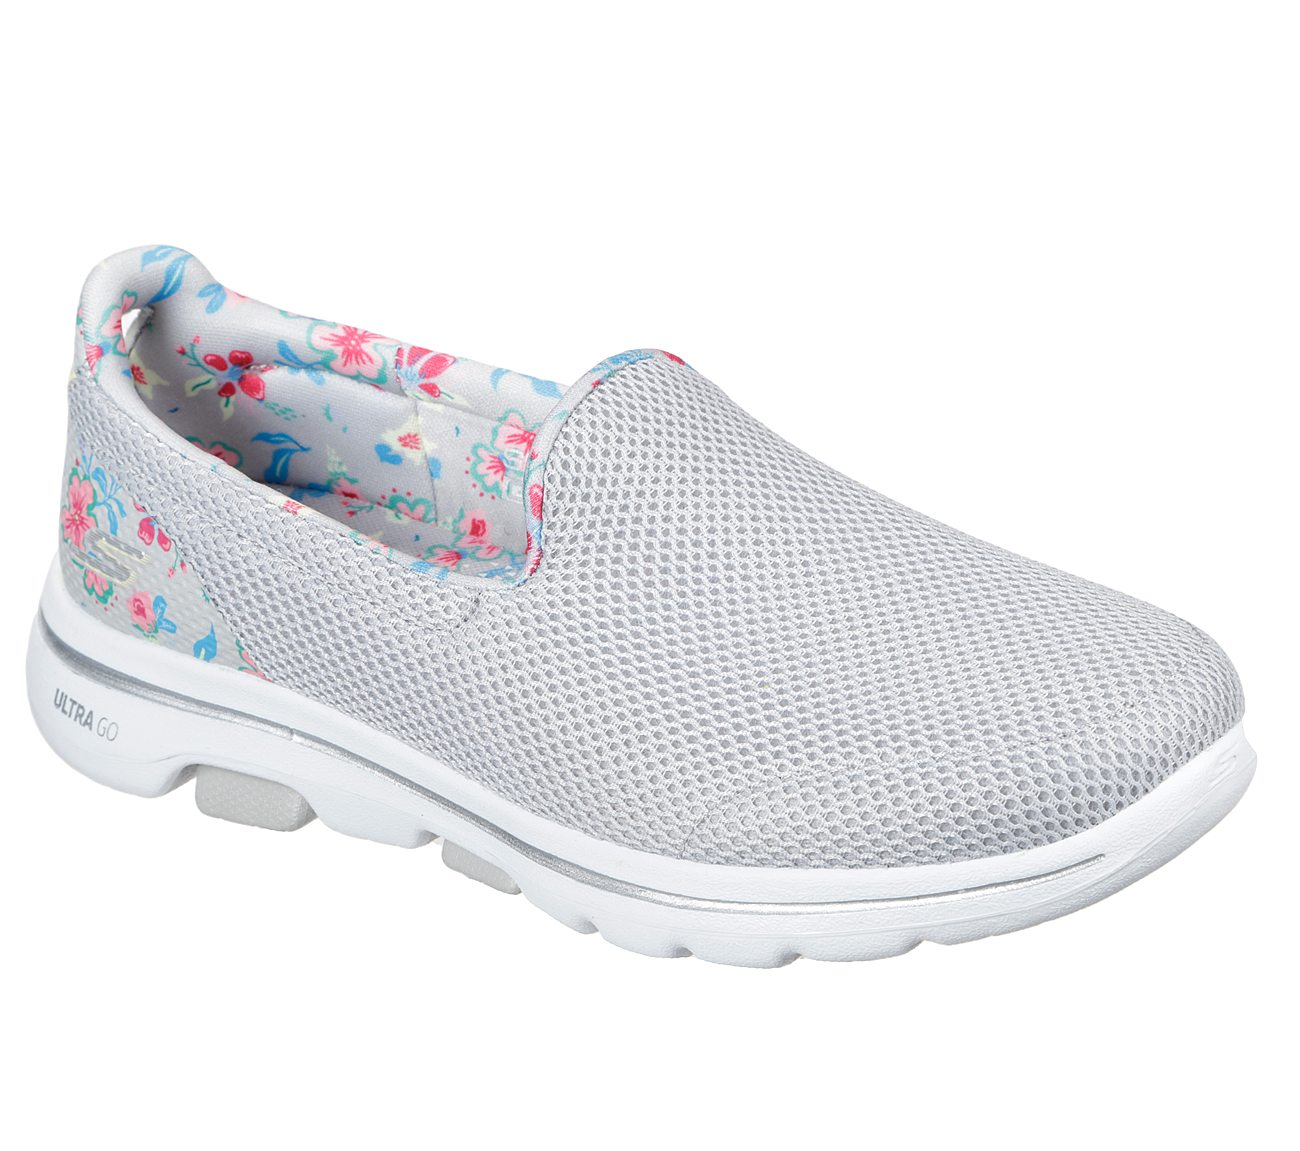 skechers on the go women's shoes